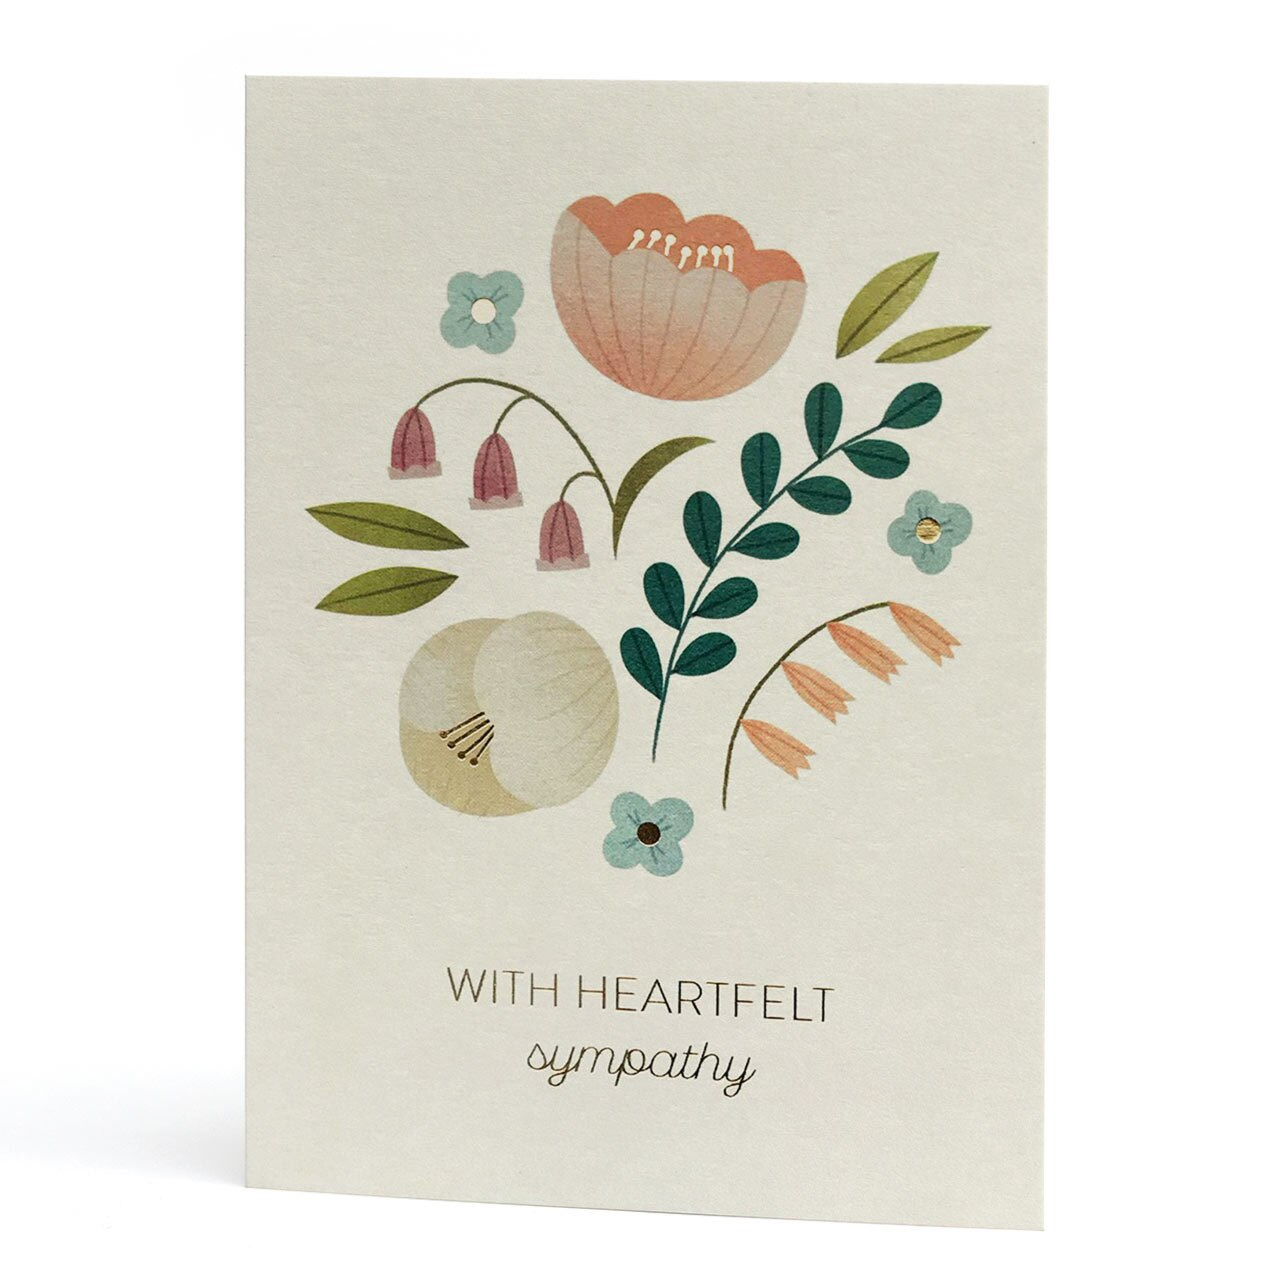 With Heartfelt Sympathy Gold Foil Greeting Card